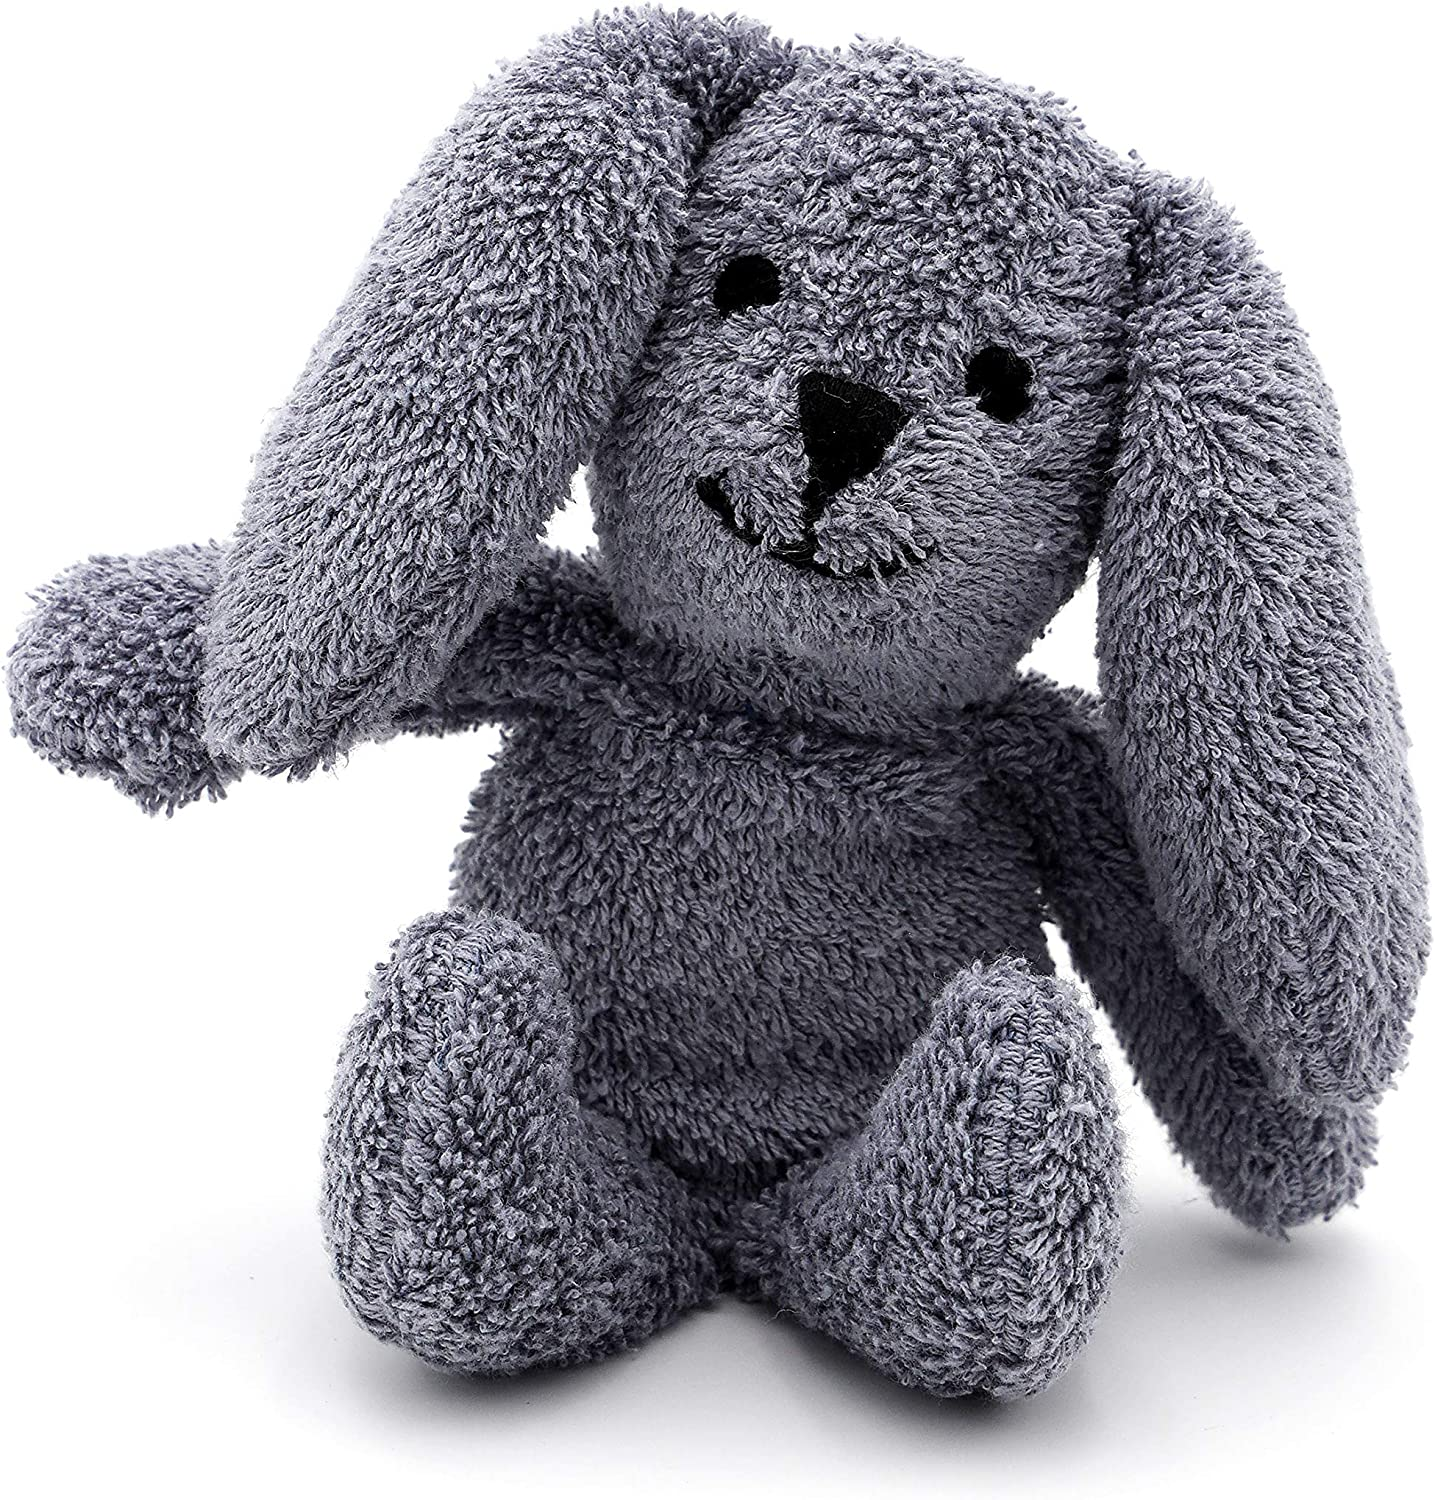 Thermal-Aid Zoo — Mini Baxter Bunny — Kids Hot and Cold Pain Relief Heating Pad Microwavable Stuffed Animal and Cooling Pad — Easy Wash, Natural Sleep Aid — Pregnancy Must-Haves for Baby First Aid Kit: Health & Personal Care